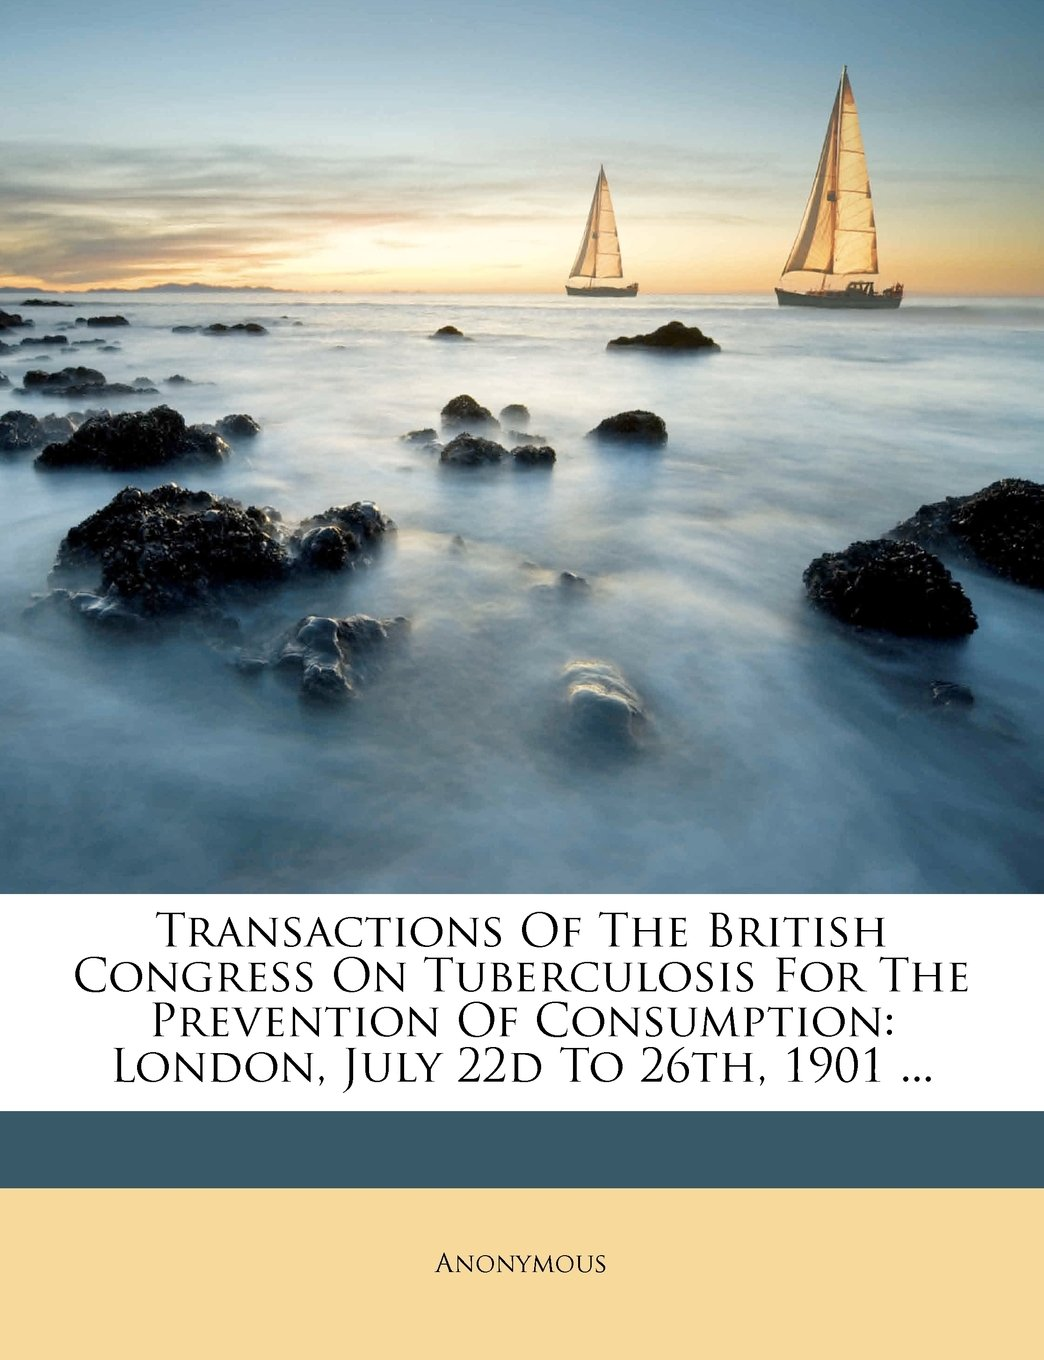 Download Transactions Of The British Congress On Tuberculosis For The Prevention Of Consumption: London, July 22d To 26th, 1901 ... PDF